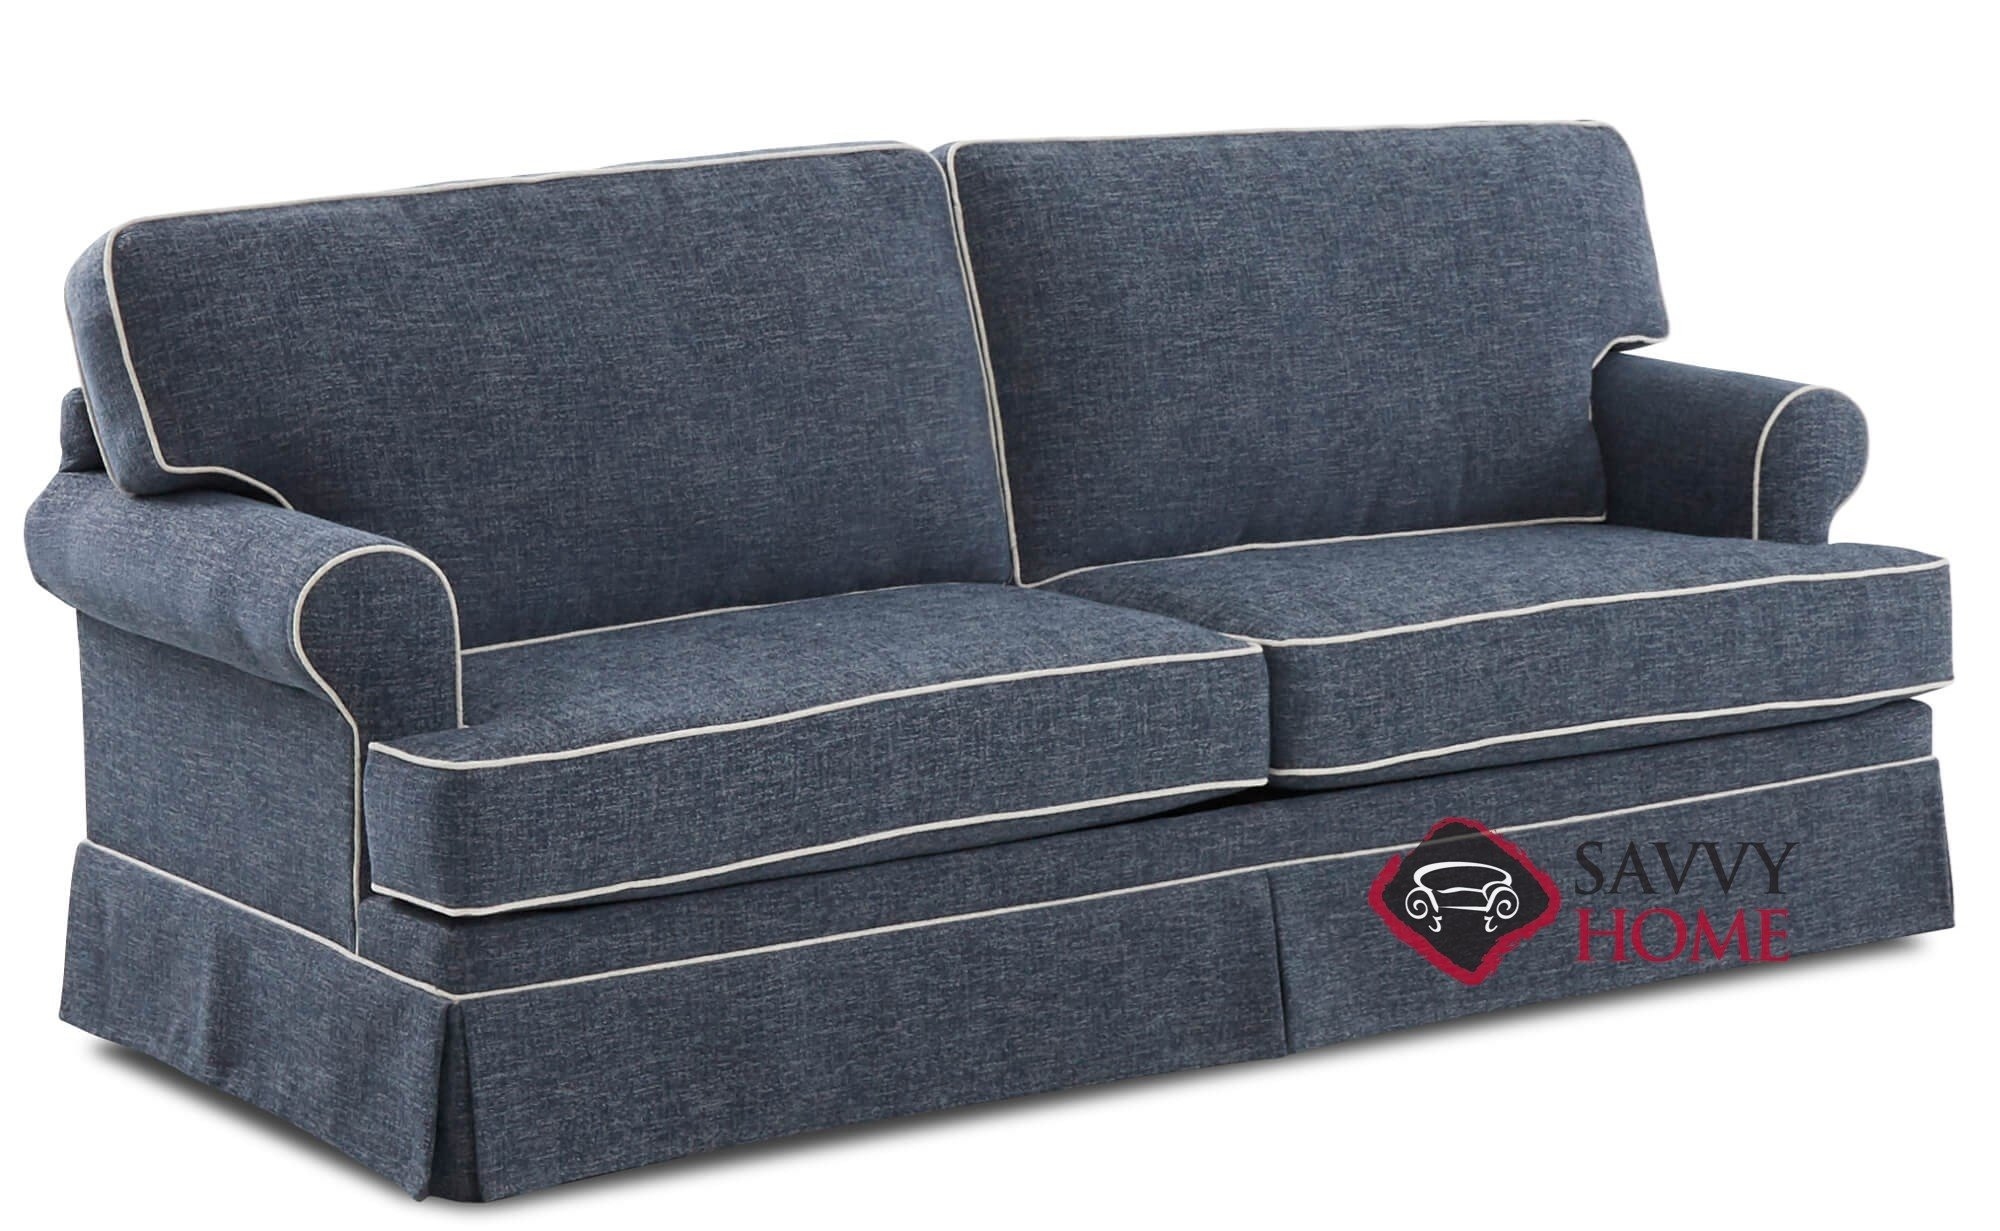 Remarkable Cranston Queen Sofa Bed By Savvy Theyellowbook Wood Chair Design Ideas Theyellowbookinfo